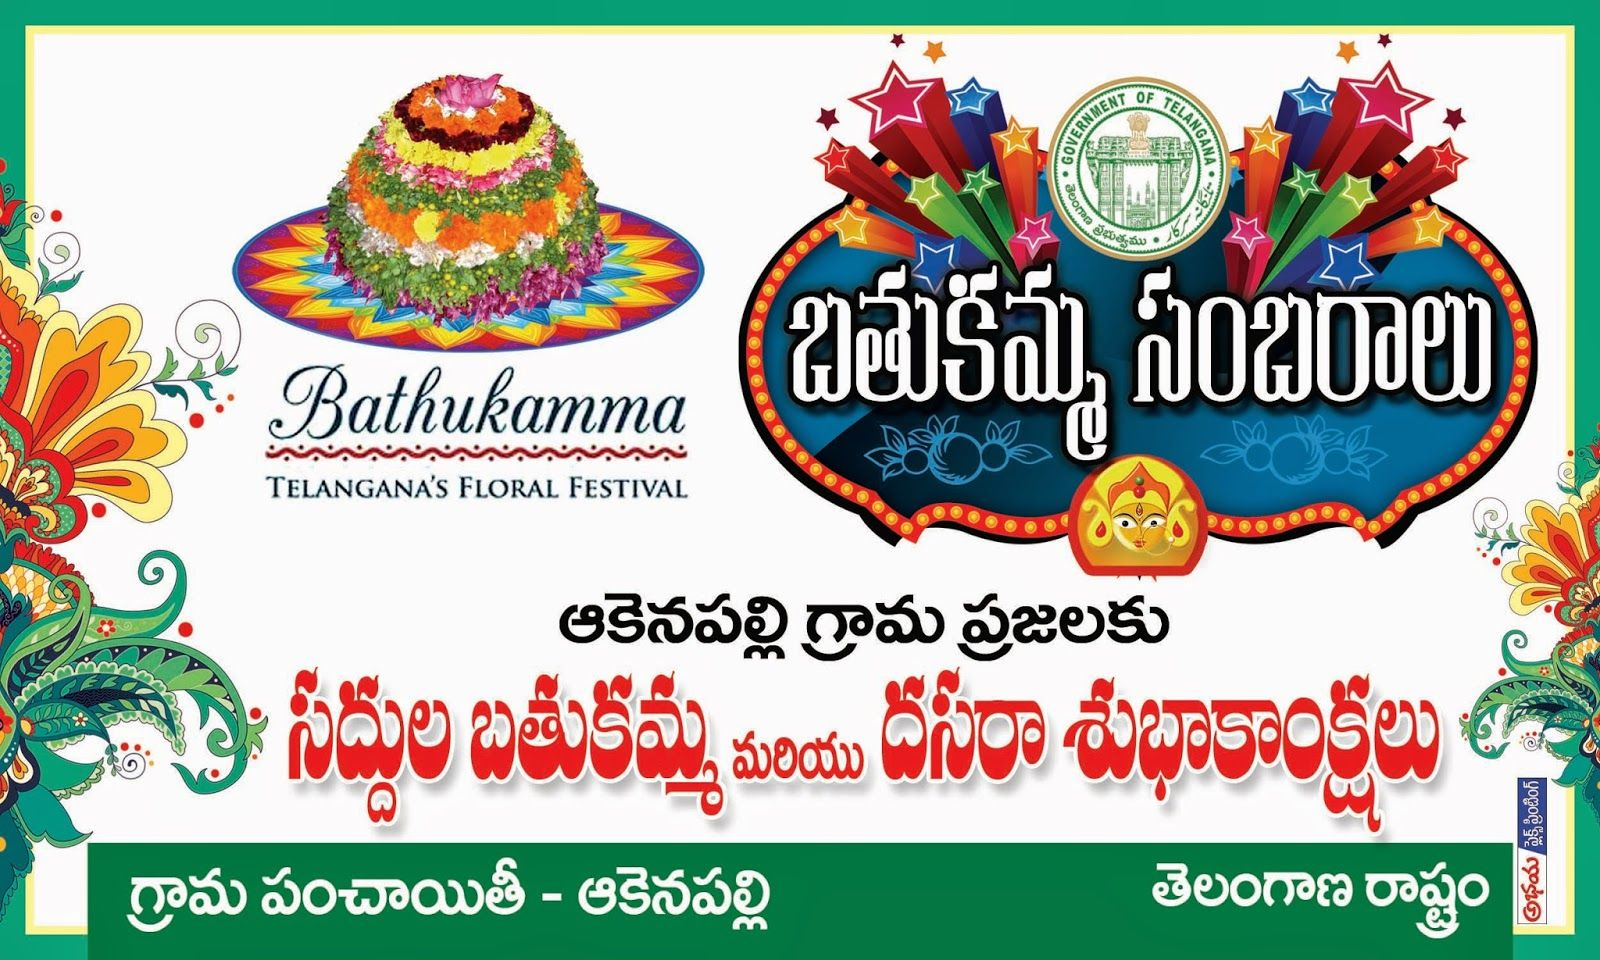 011 Essay Example On Bathukamma In Dreaded Telugu Short Language